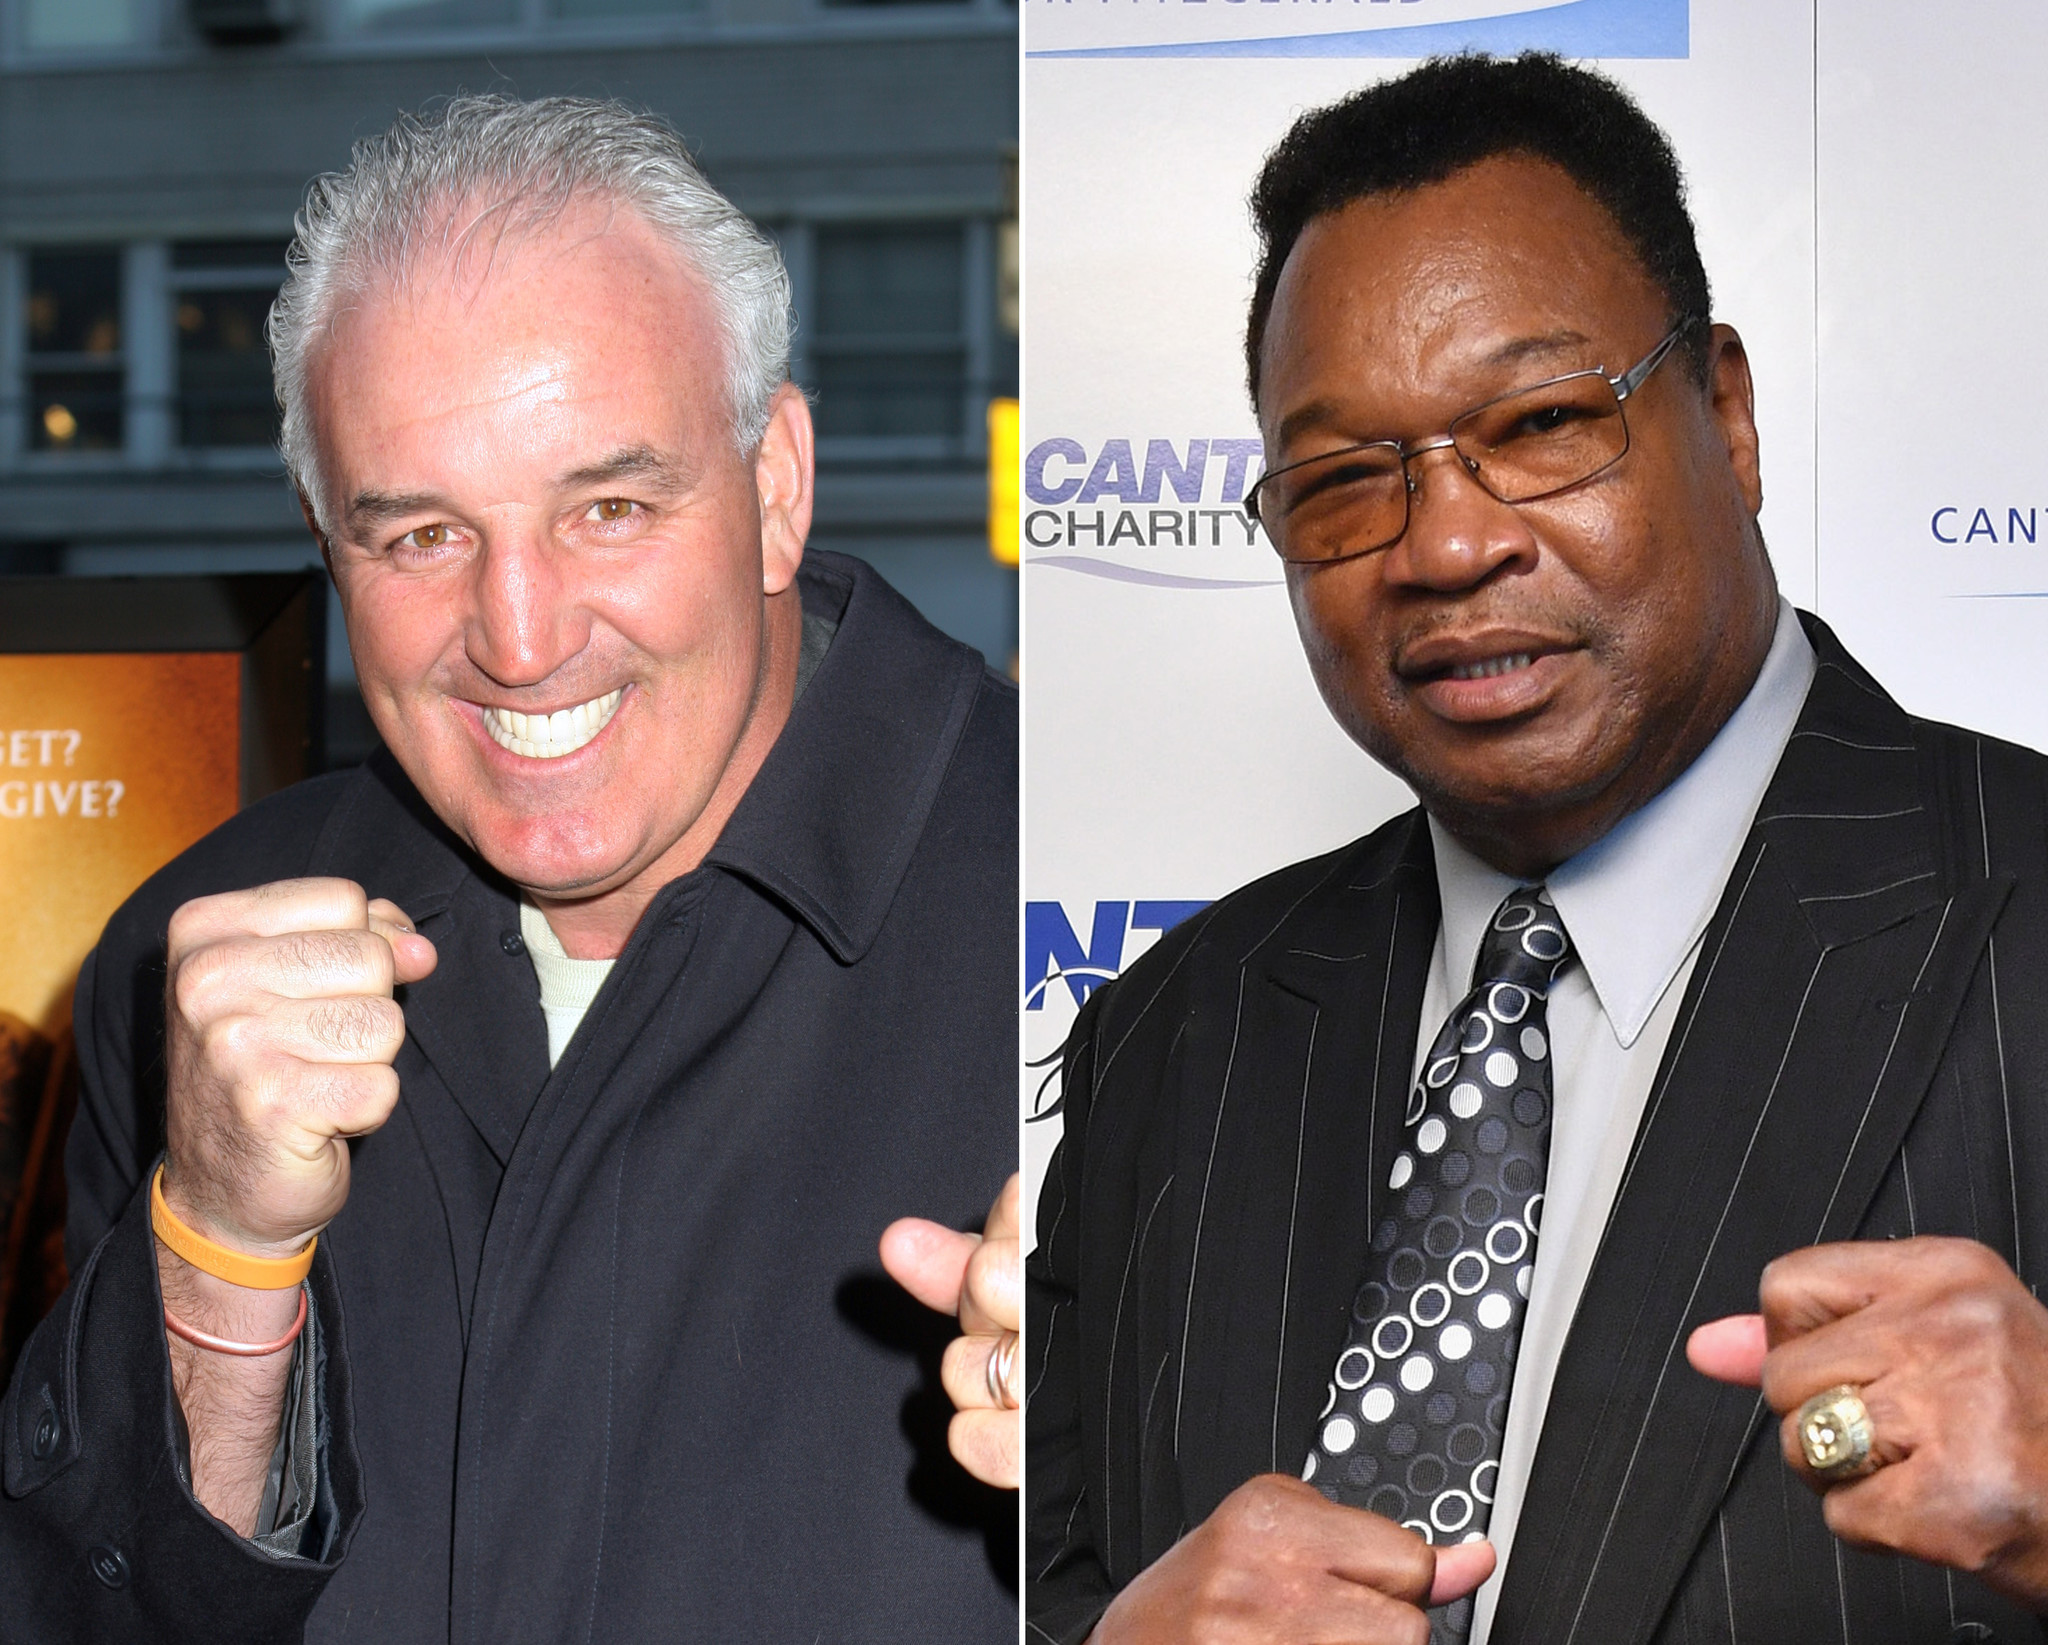 Larry Holmes and Gerry Cooney may slug it out again, nearly 40 years after their title fight